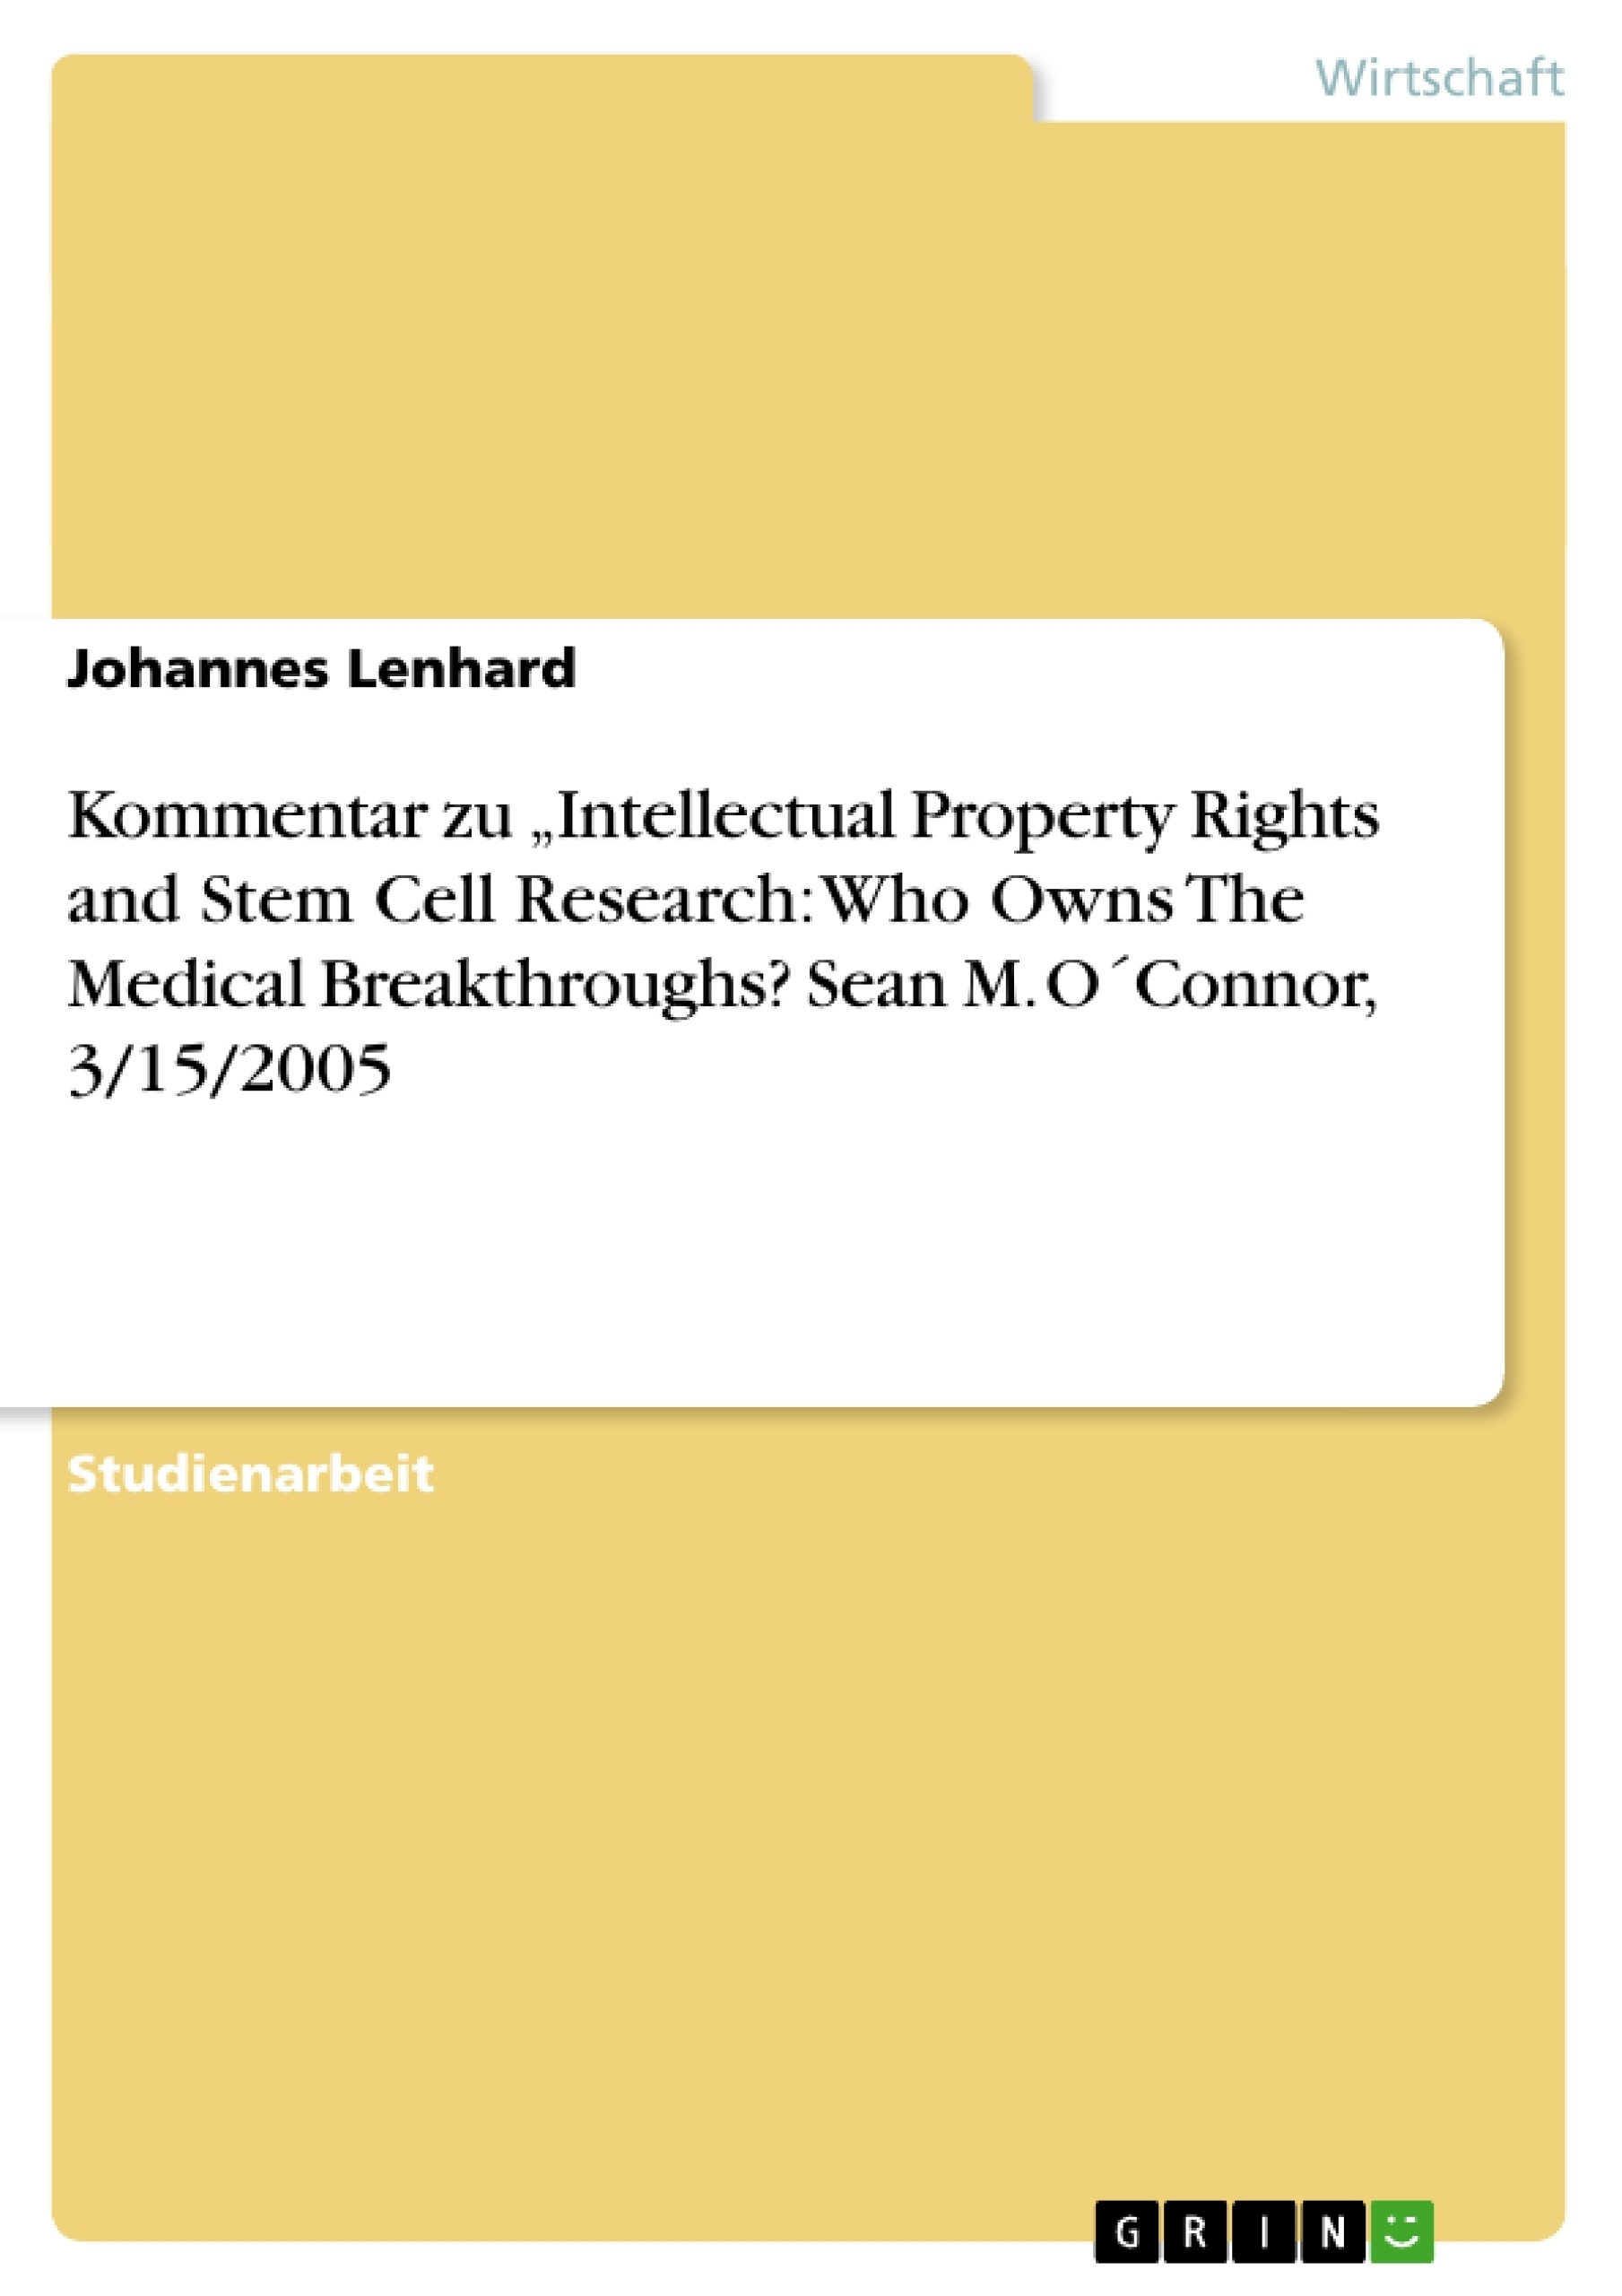 """Titel: Kommentar zu  """"Intellectual Property Rights and Stem Cell Research: Who Owns The Medical Breakthroughs?   Sean M. O´Connor, 3/15/2005"""